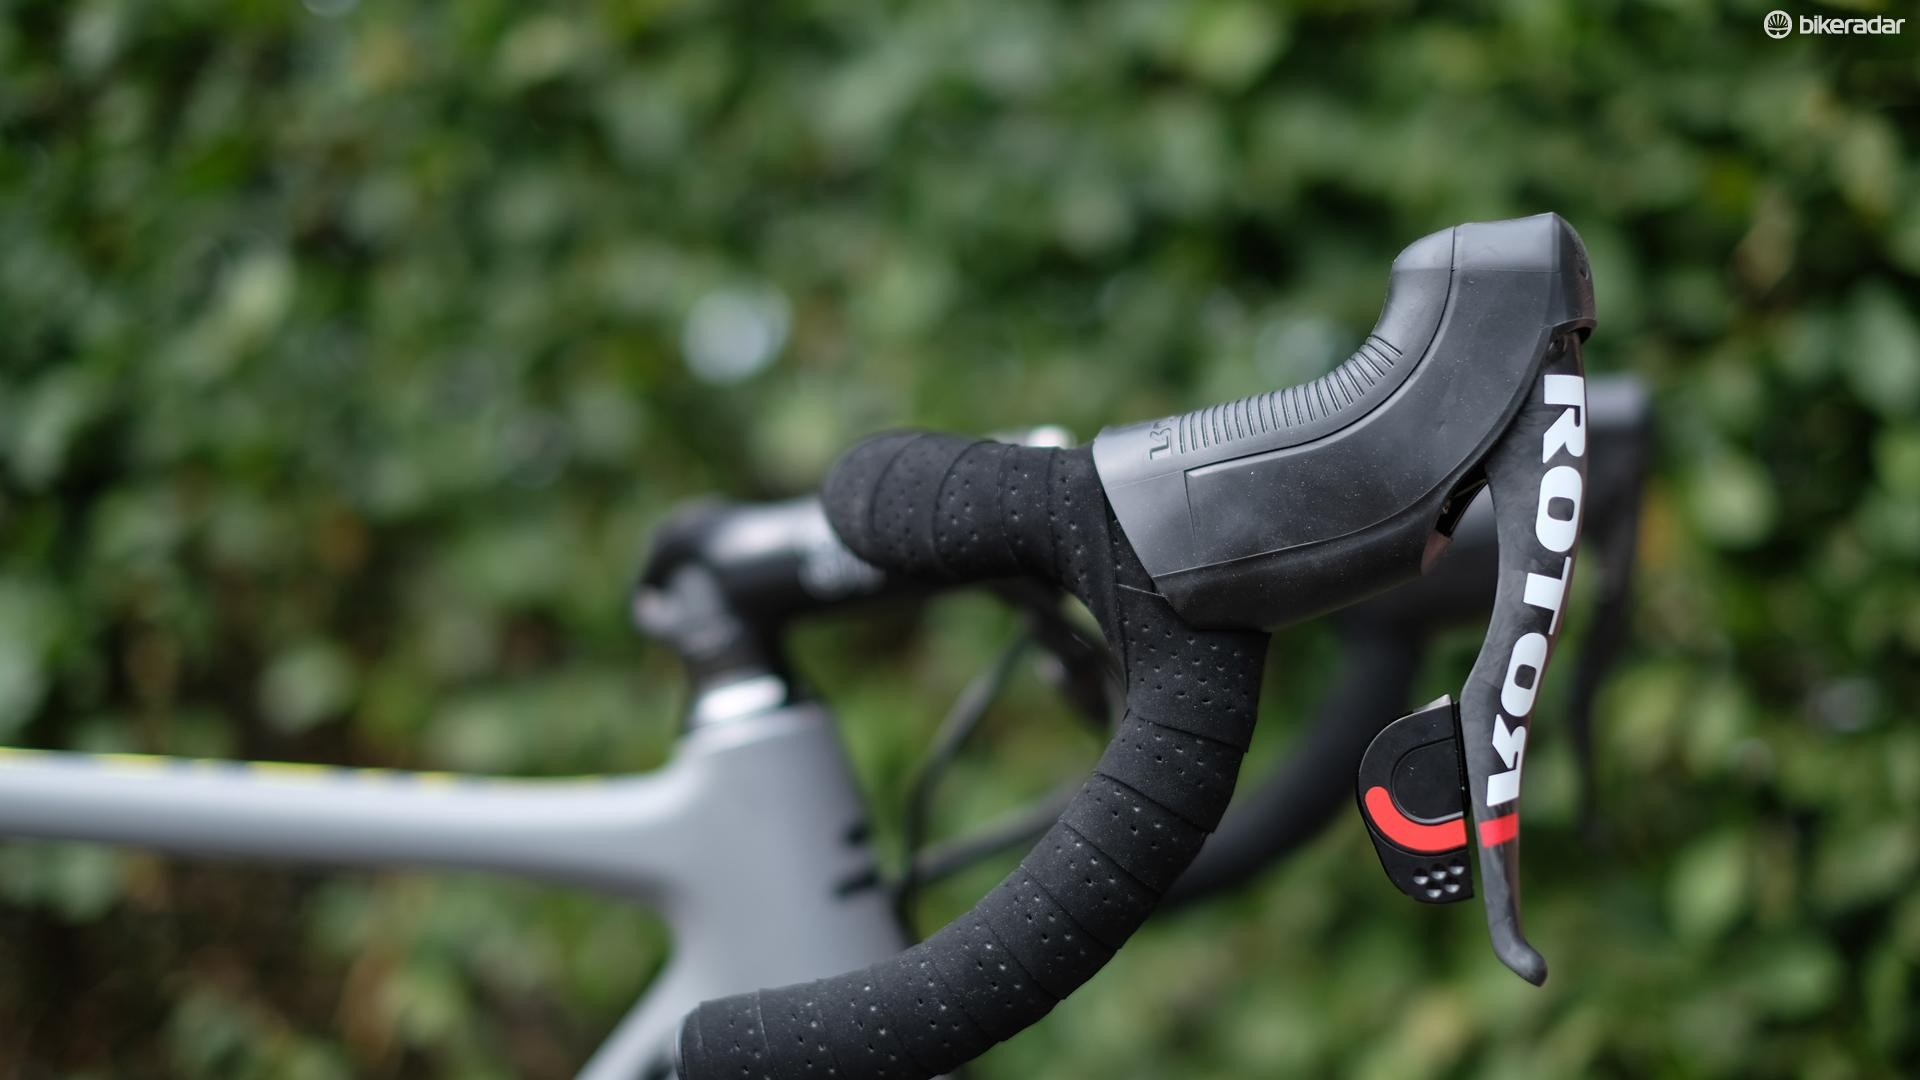 The road bike shifters are the same components that featured in Uno, Rotor's first generation hydraulic groupset